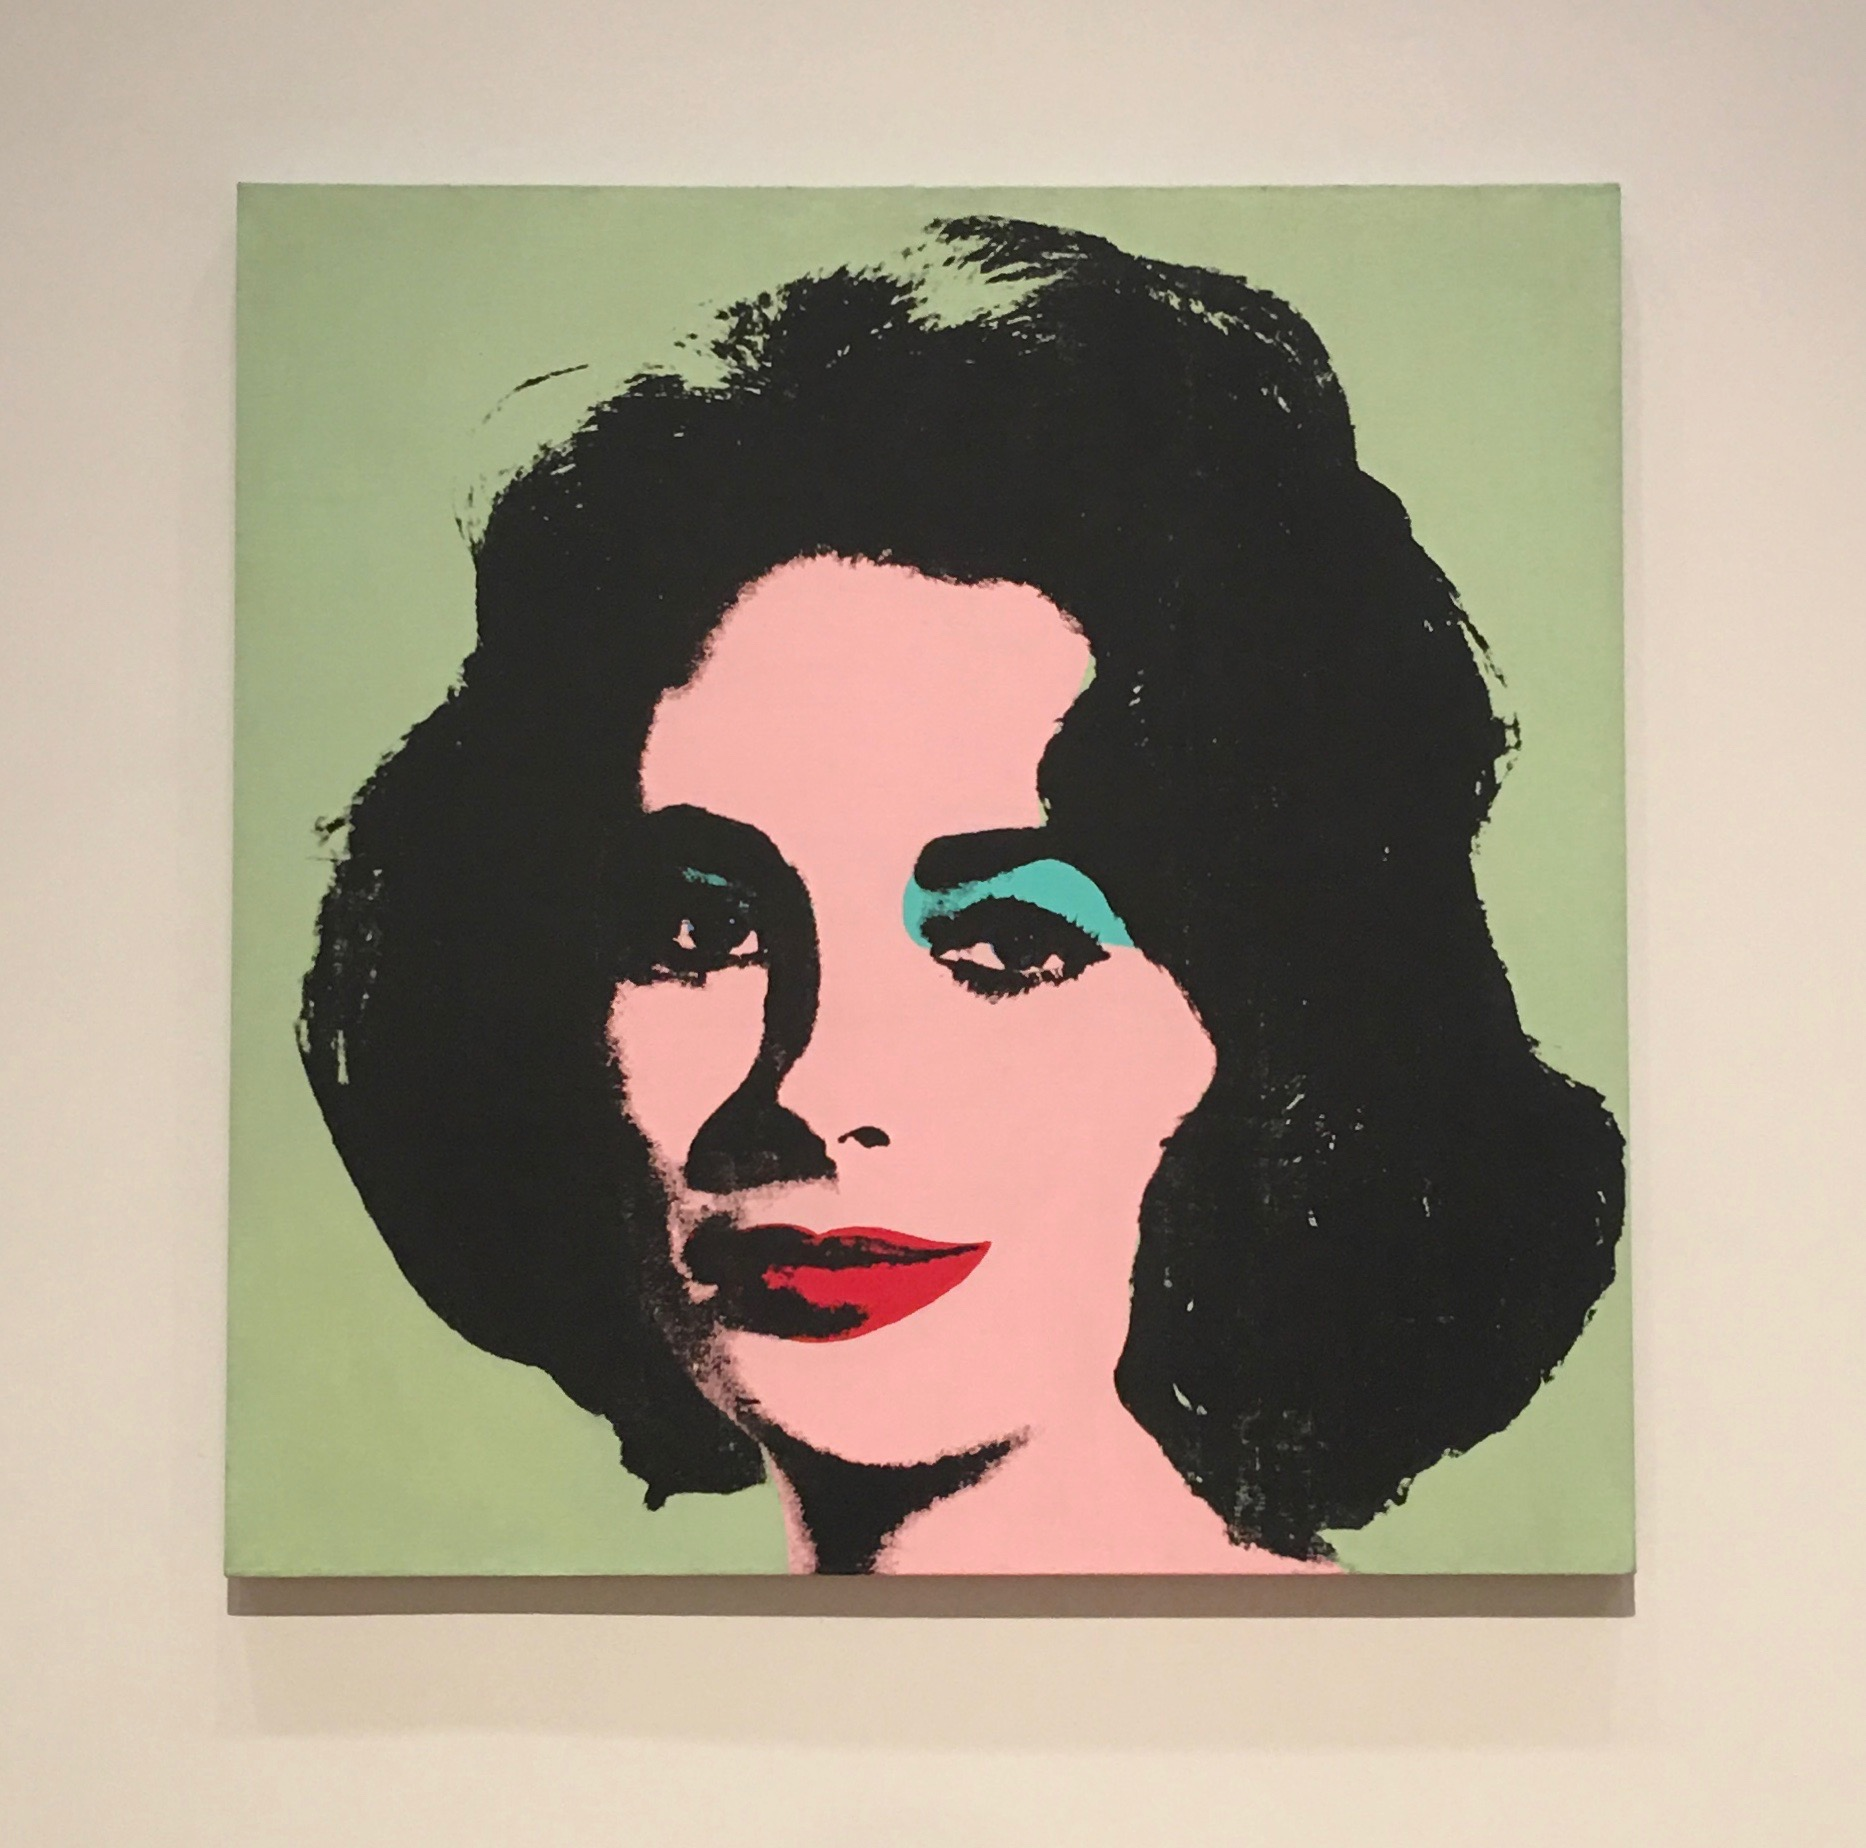 Andy Warhol, American 1928-1987